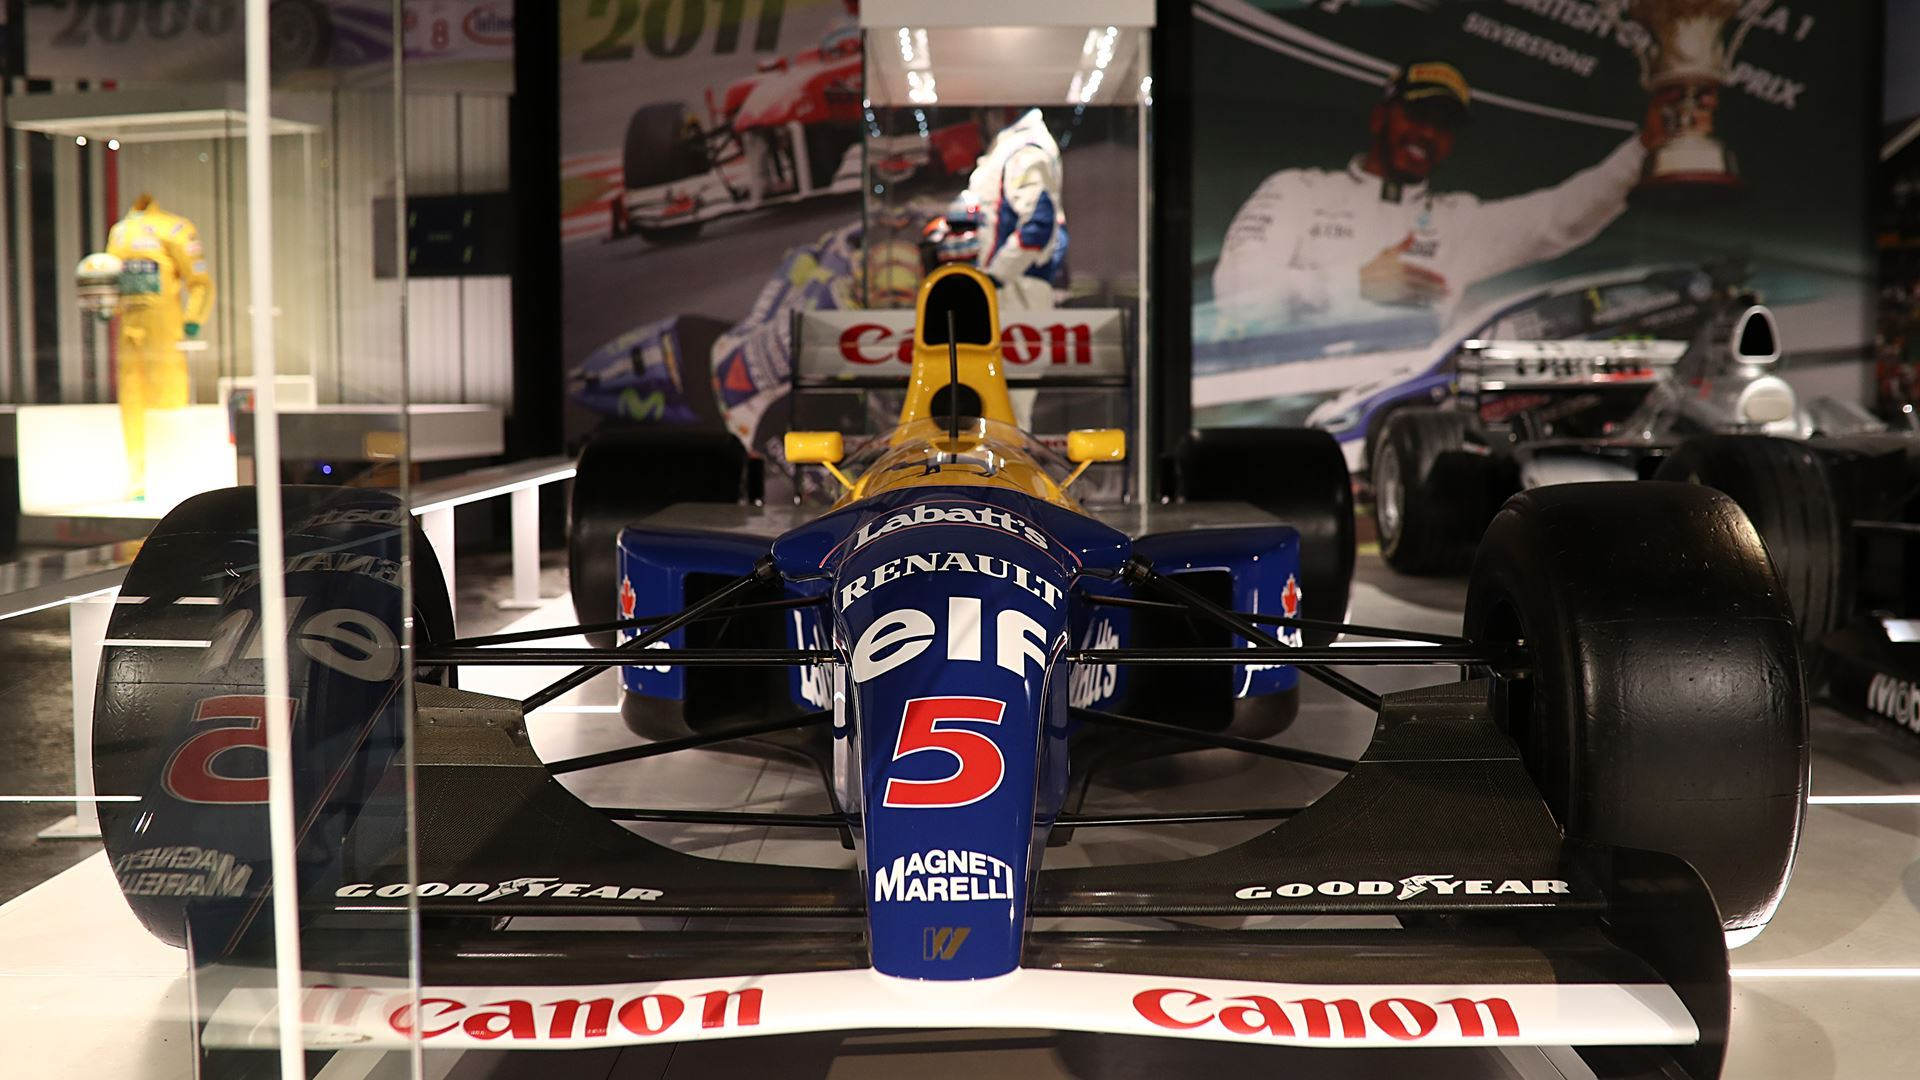 Formula 1 vehicle at UK attraction The Silverstone Experience